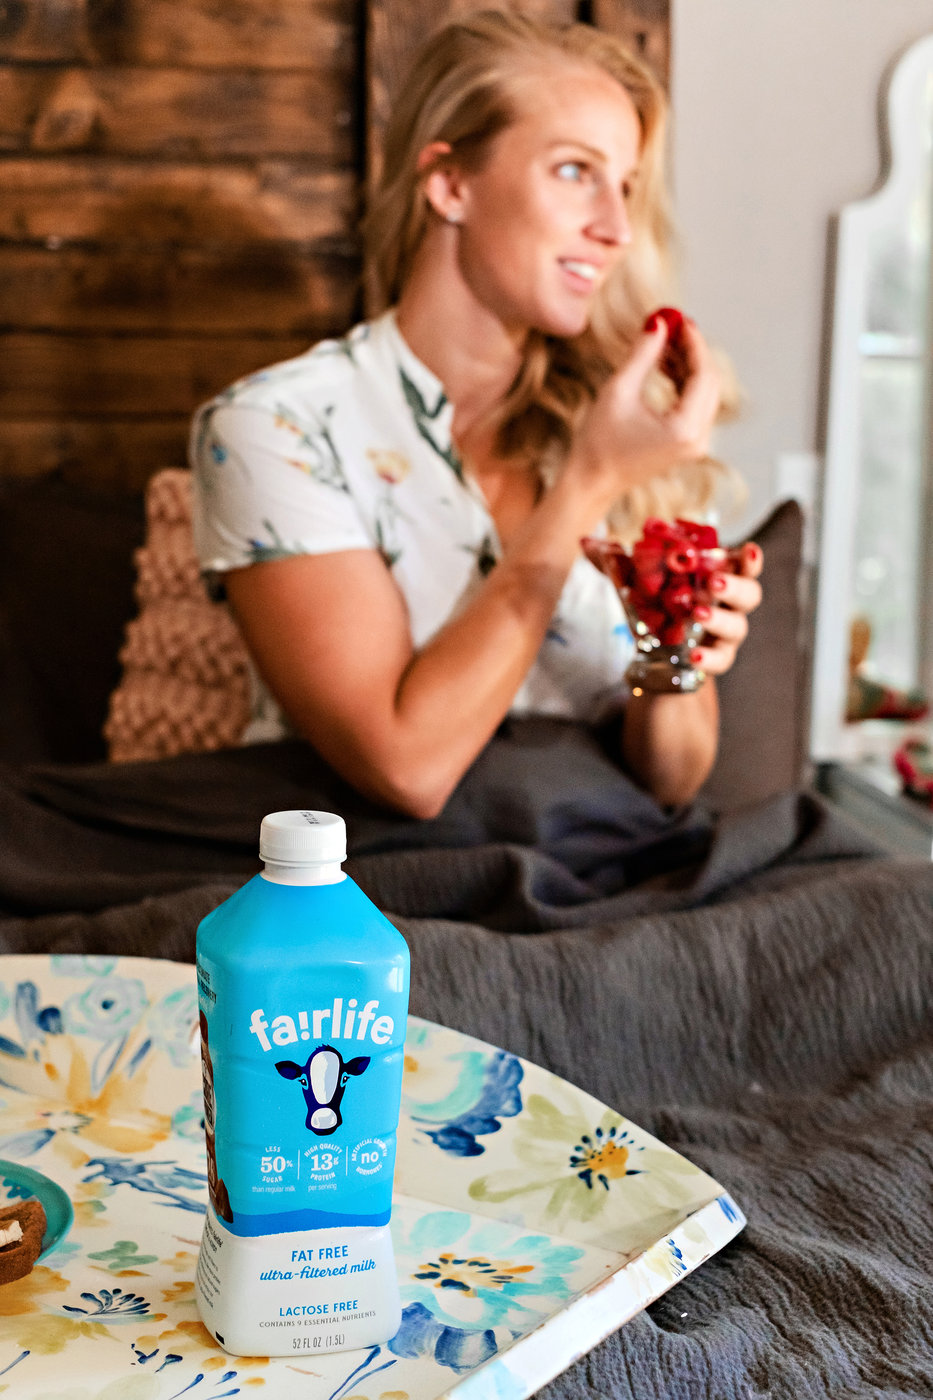 fairlife   Looking for the perfect healthy breakfast options?   Healthy Breakfast Options featured by top Atlanta fitness blog Happily Hughes